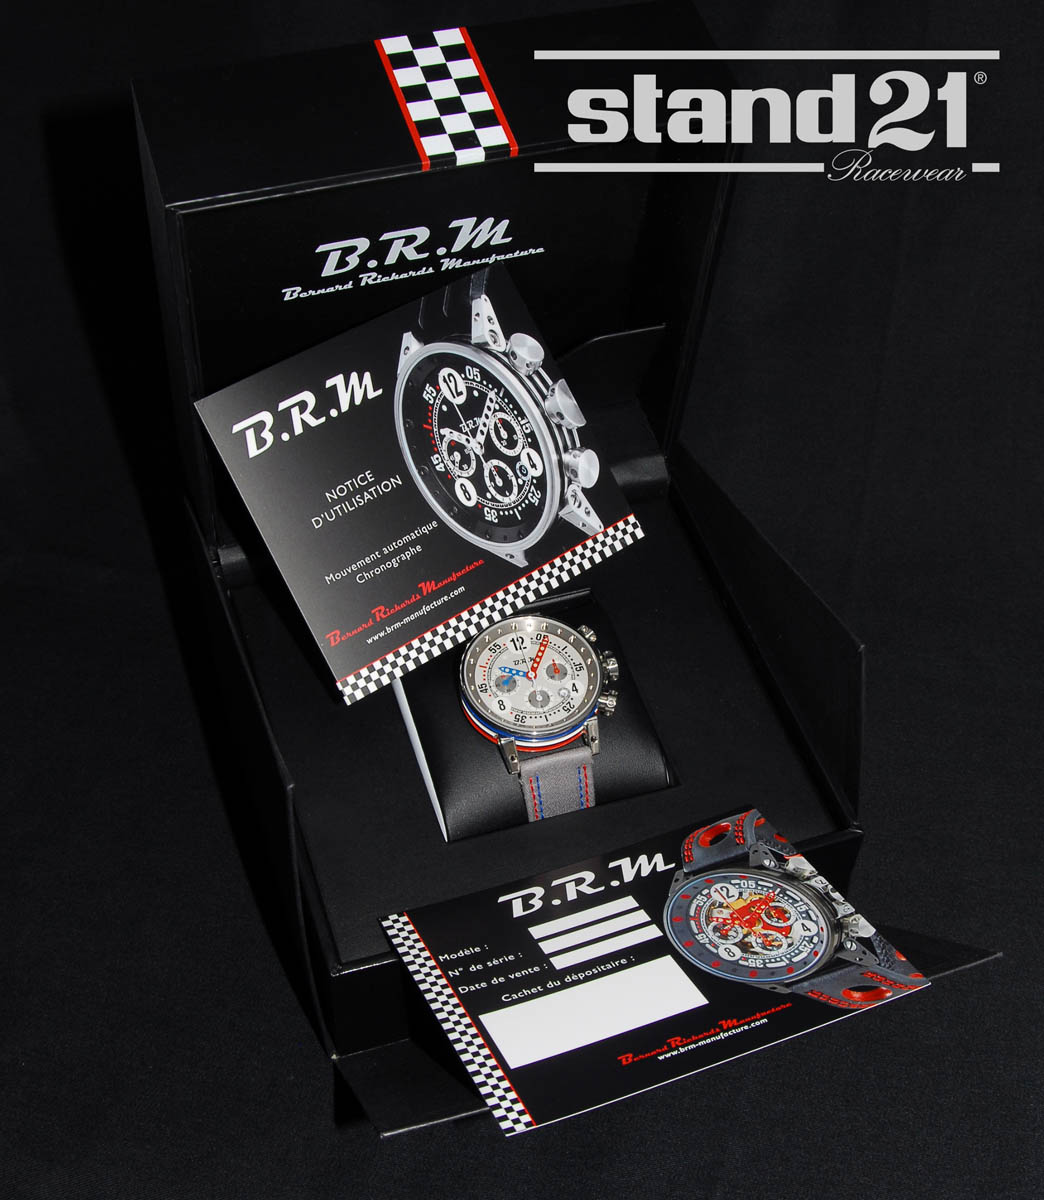 V12-44 Stand 21 Watch by B.R.M. Chronographes